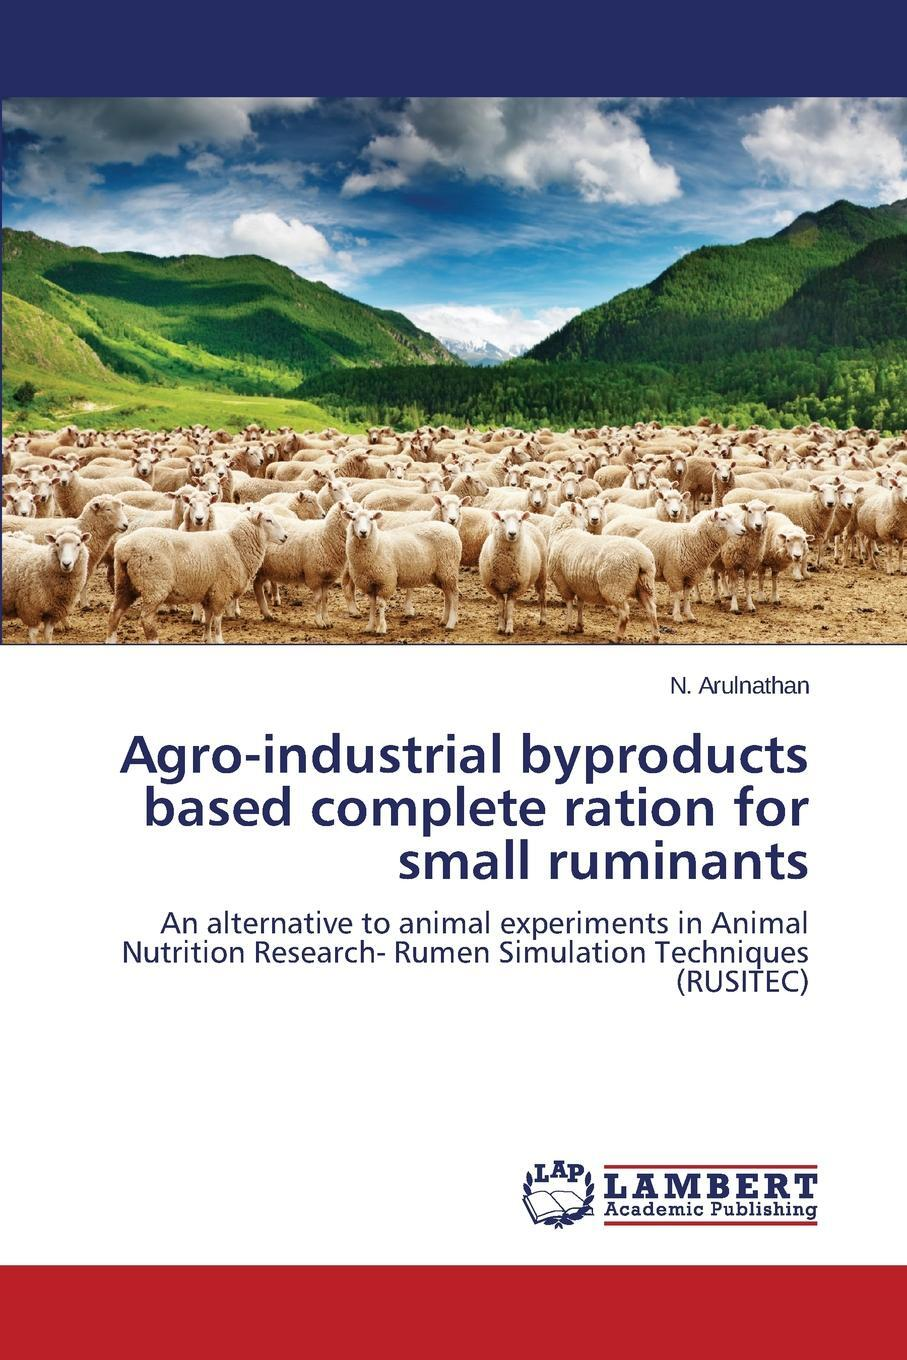 Agro-industrial byproducts based complete ration for small ruminants